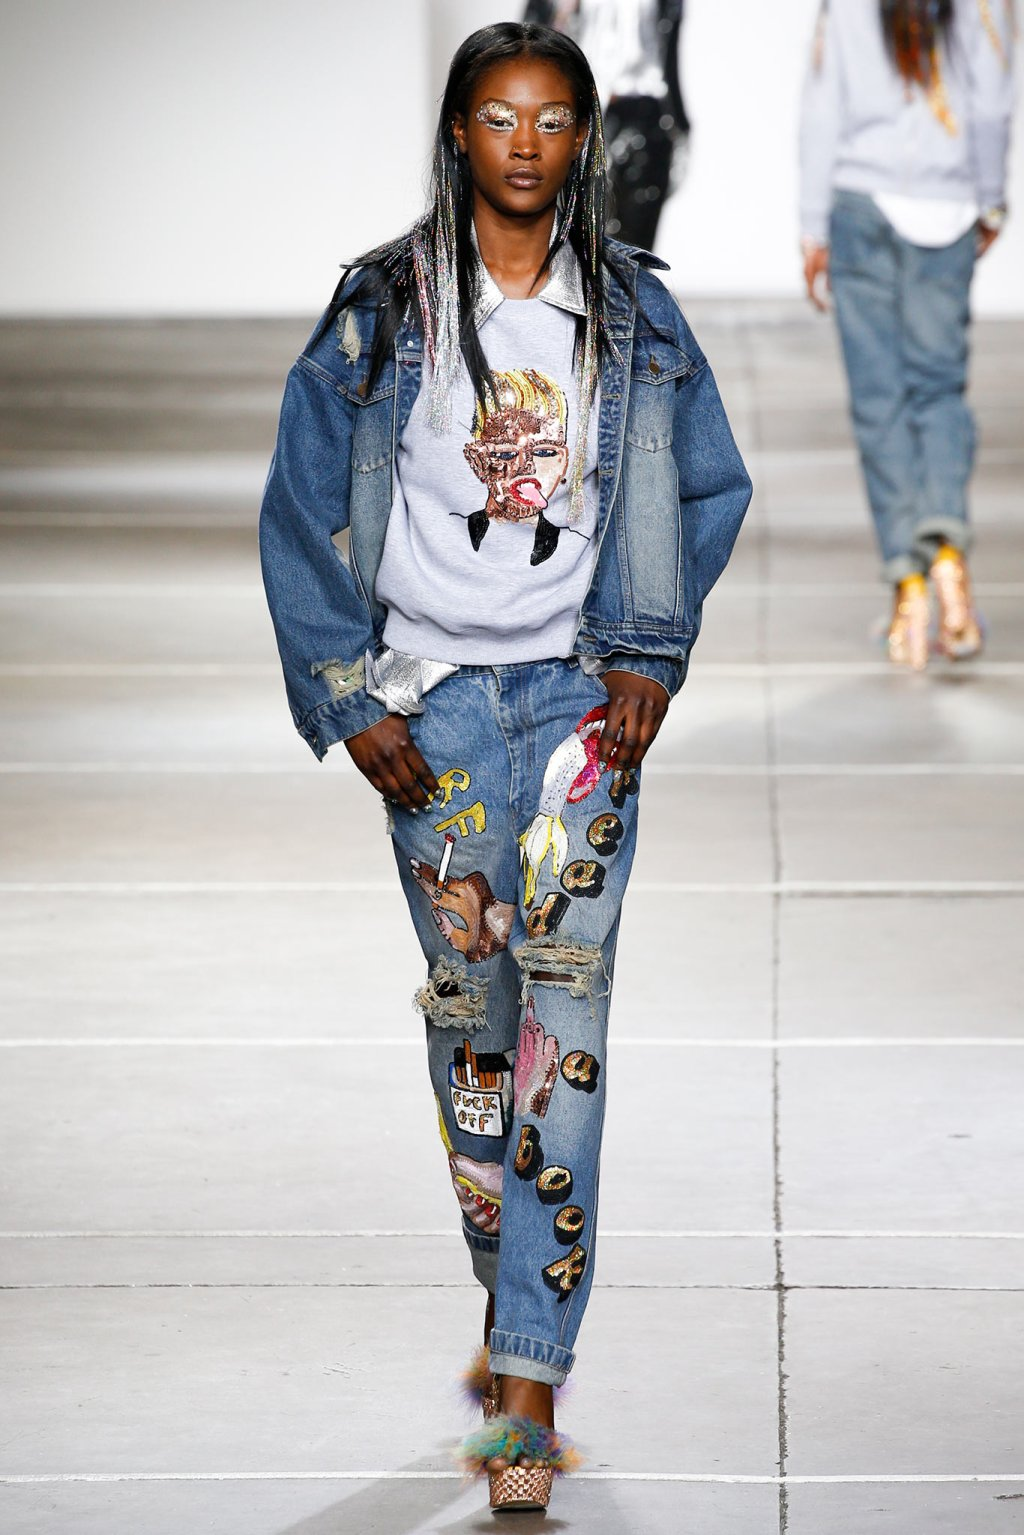 ASHISH DOUBLE DENIM MODEL SPRING SUMMER 2015 FASHION WEEK